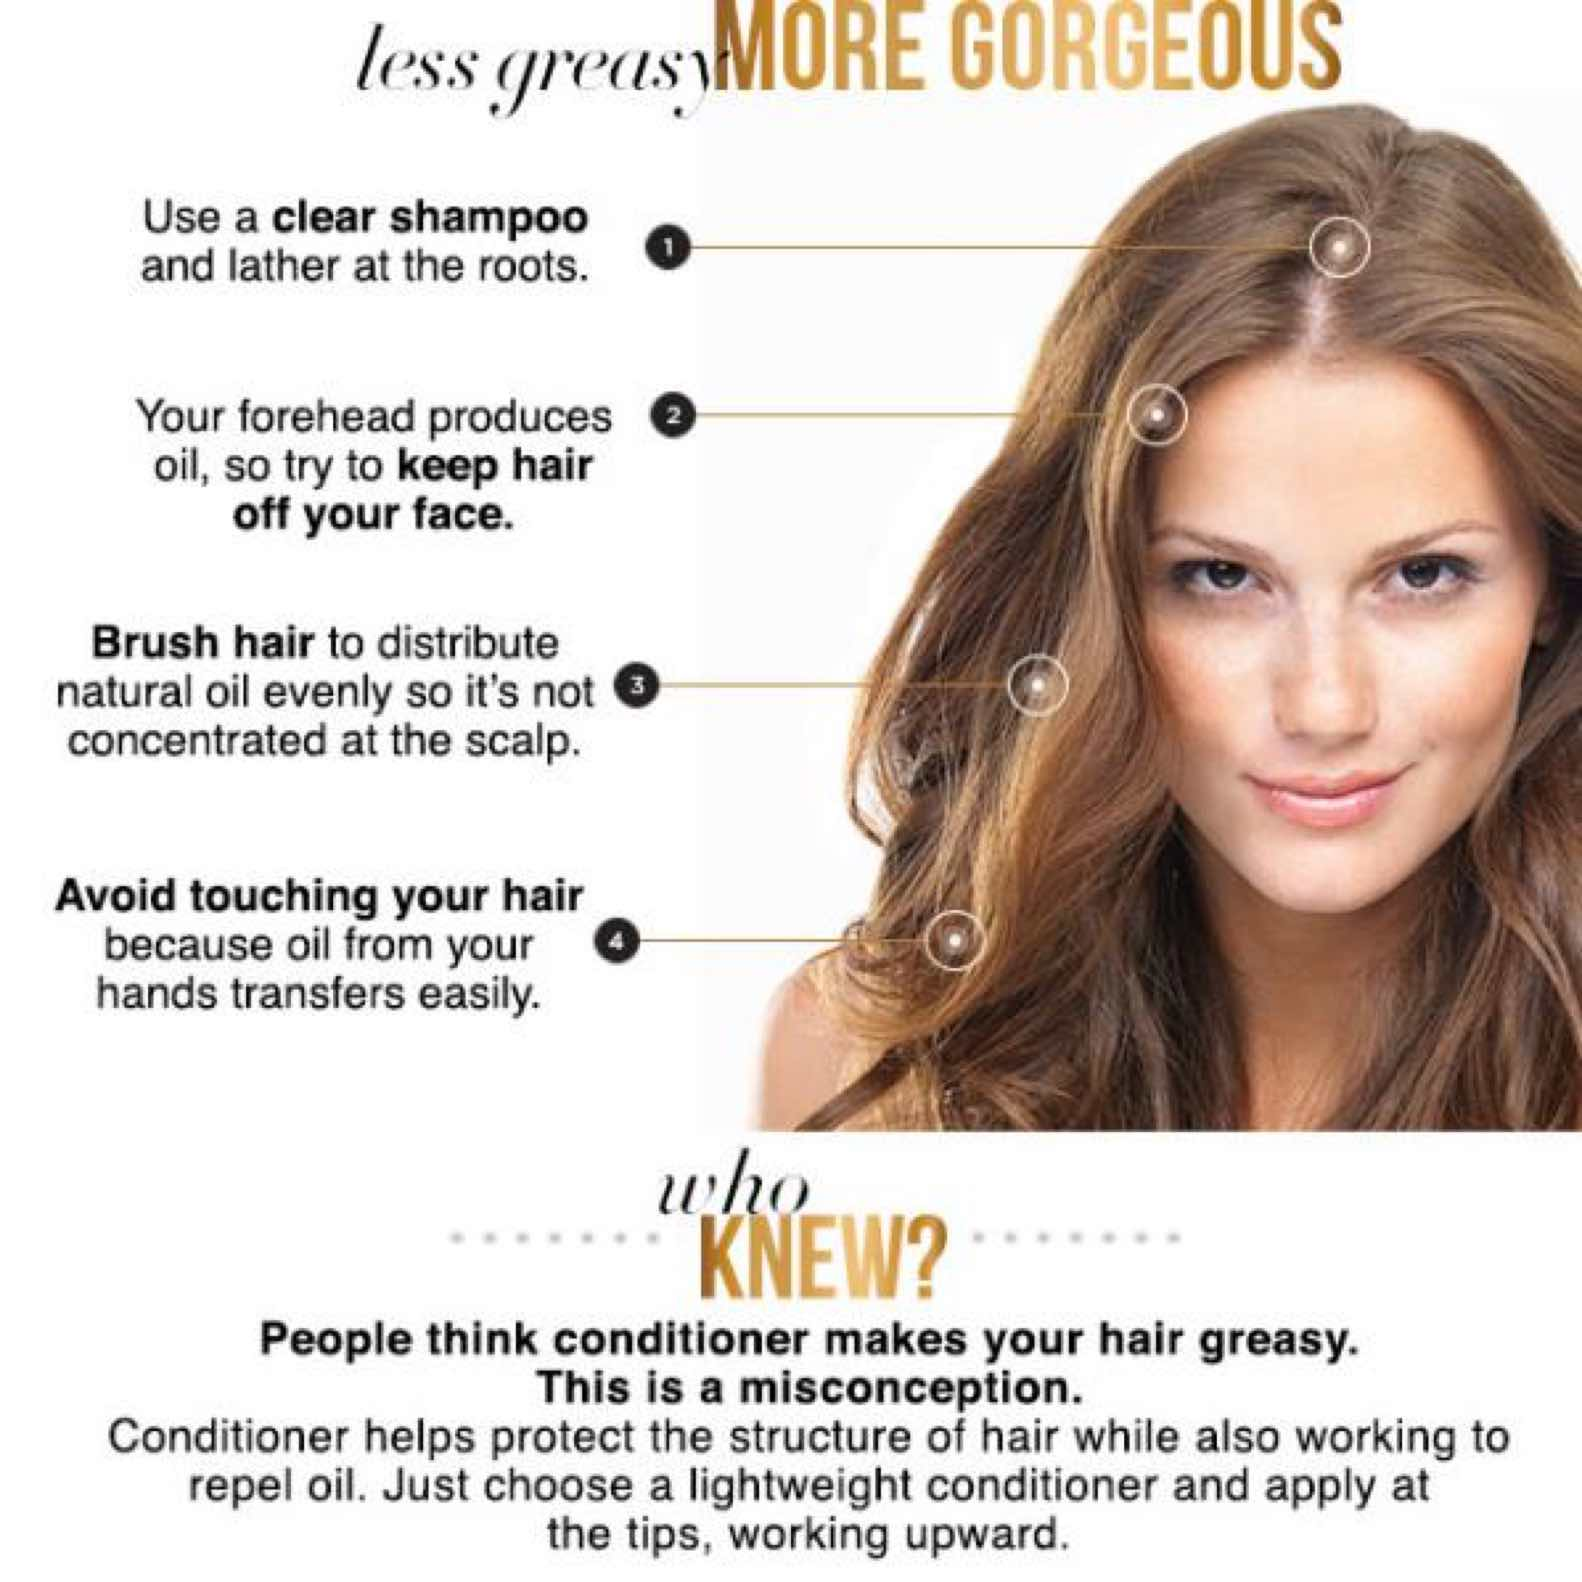 How to get rid of greasy hair2